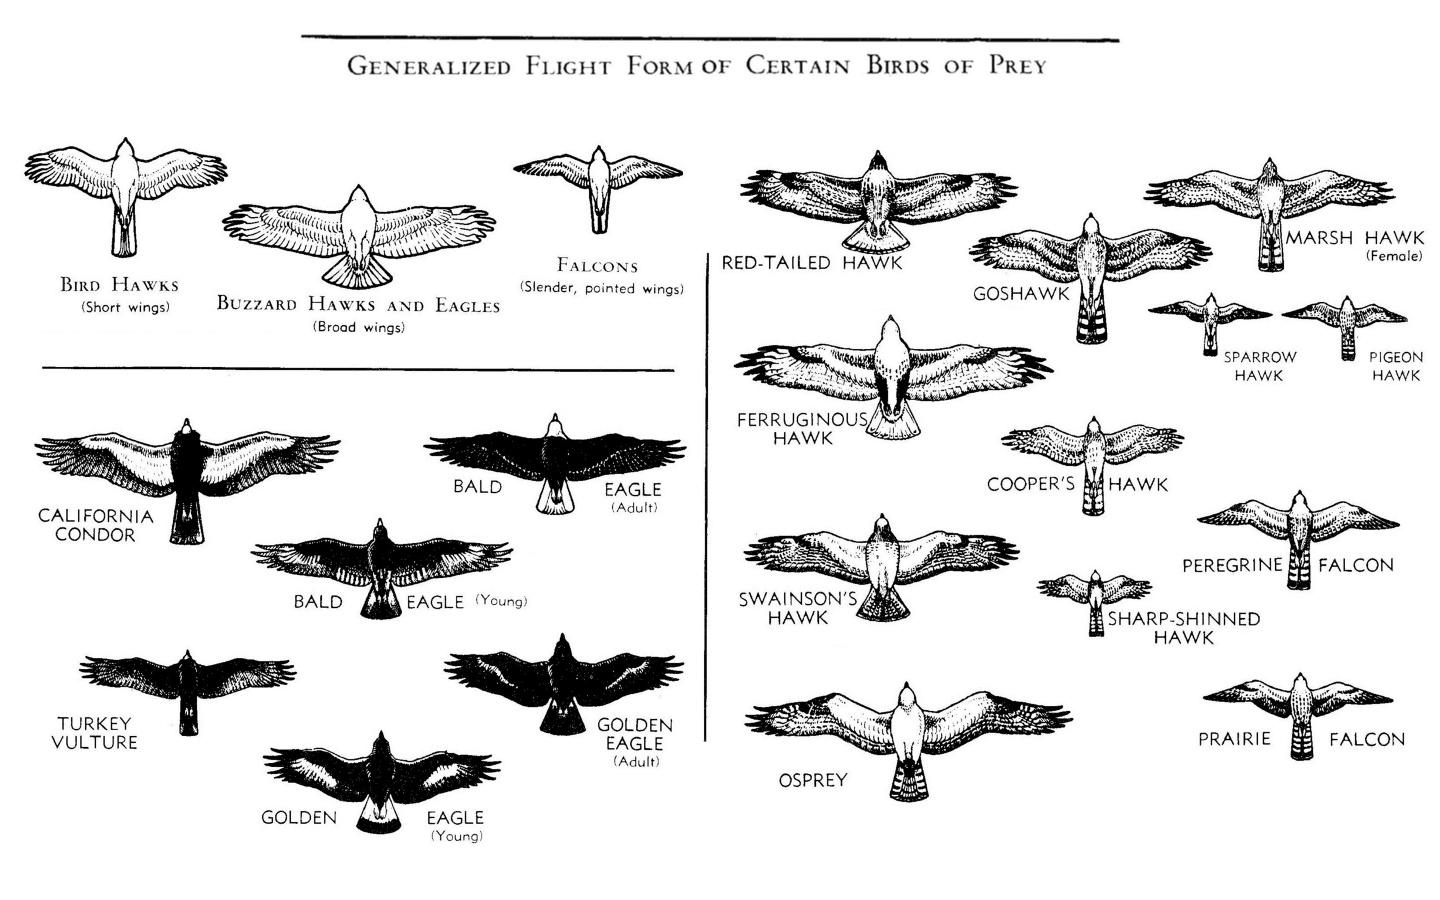 Generalized of birds flight form depending on its kind. From bird hawks with short wings, buzzard hawks and eagles with broad wings and falcons with slender pointed wings.